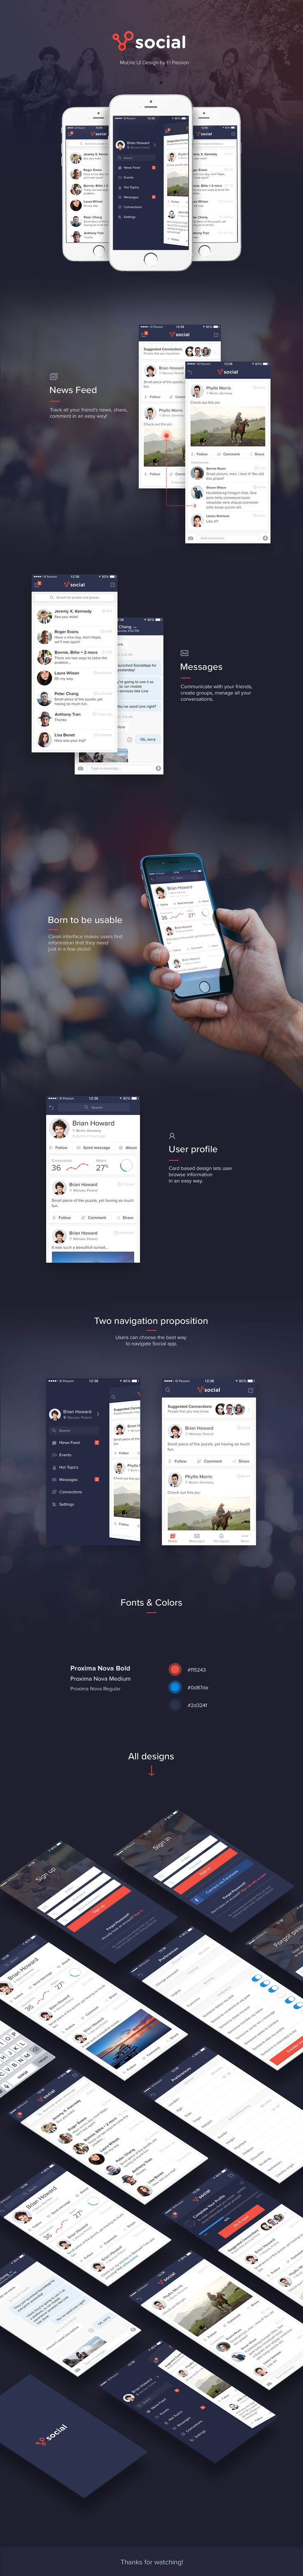 Social network application concept